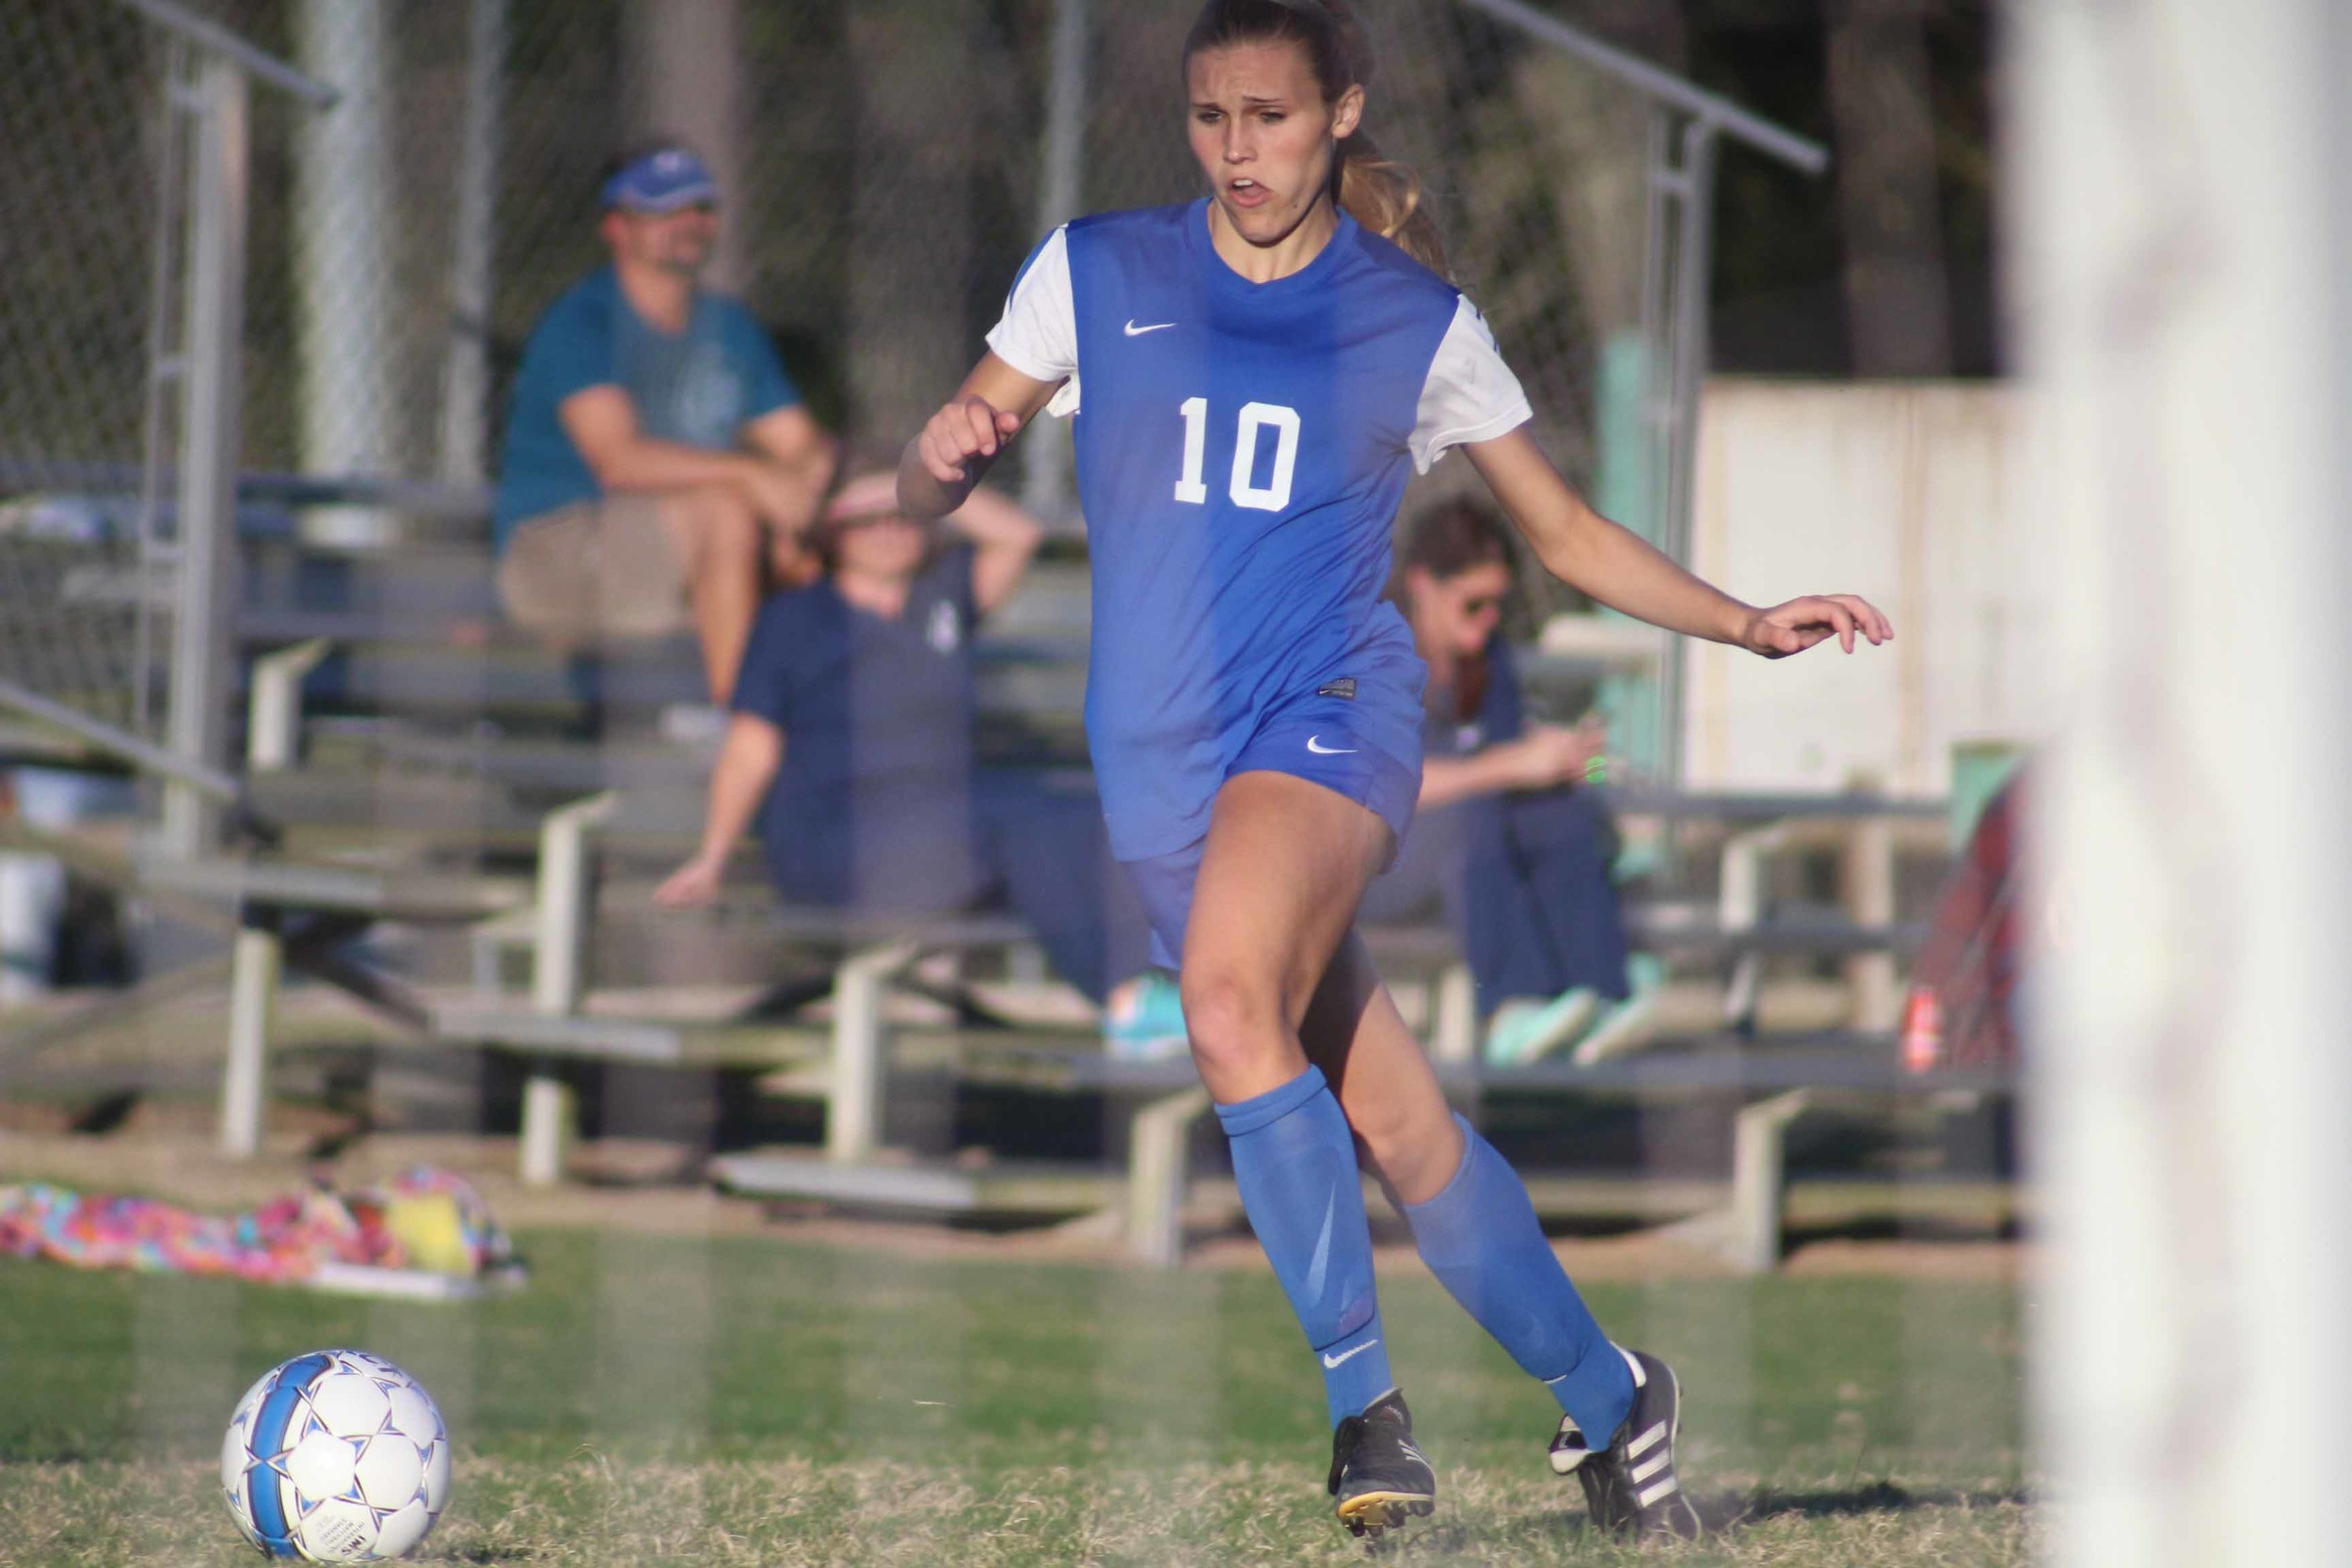 Clay High junior Lissy Stoffel scored 28 goals with an amazing 55 assists as the Blue Devils competed in same district as Ponte Vedra.